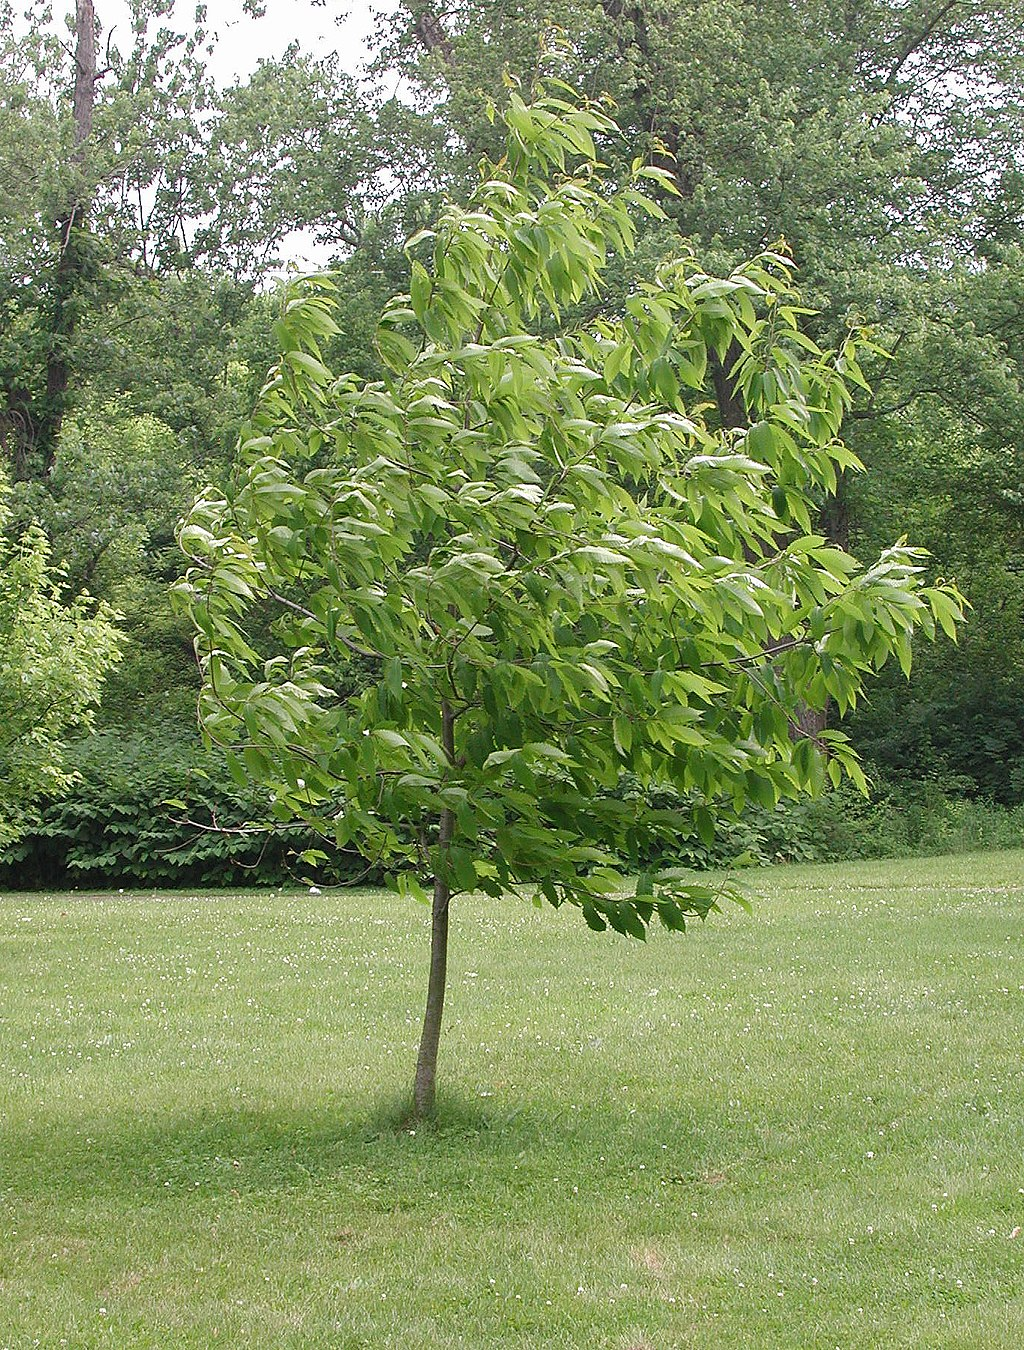 American chestnut field trial sapling from the American Chestnut Cooperators Foundation    — Photo by Jaknouse